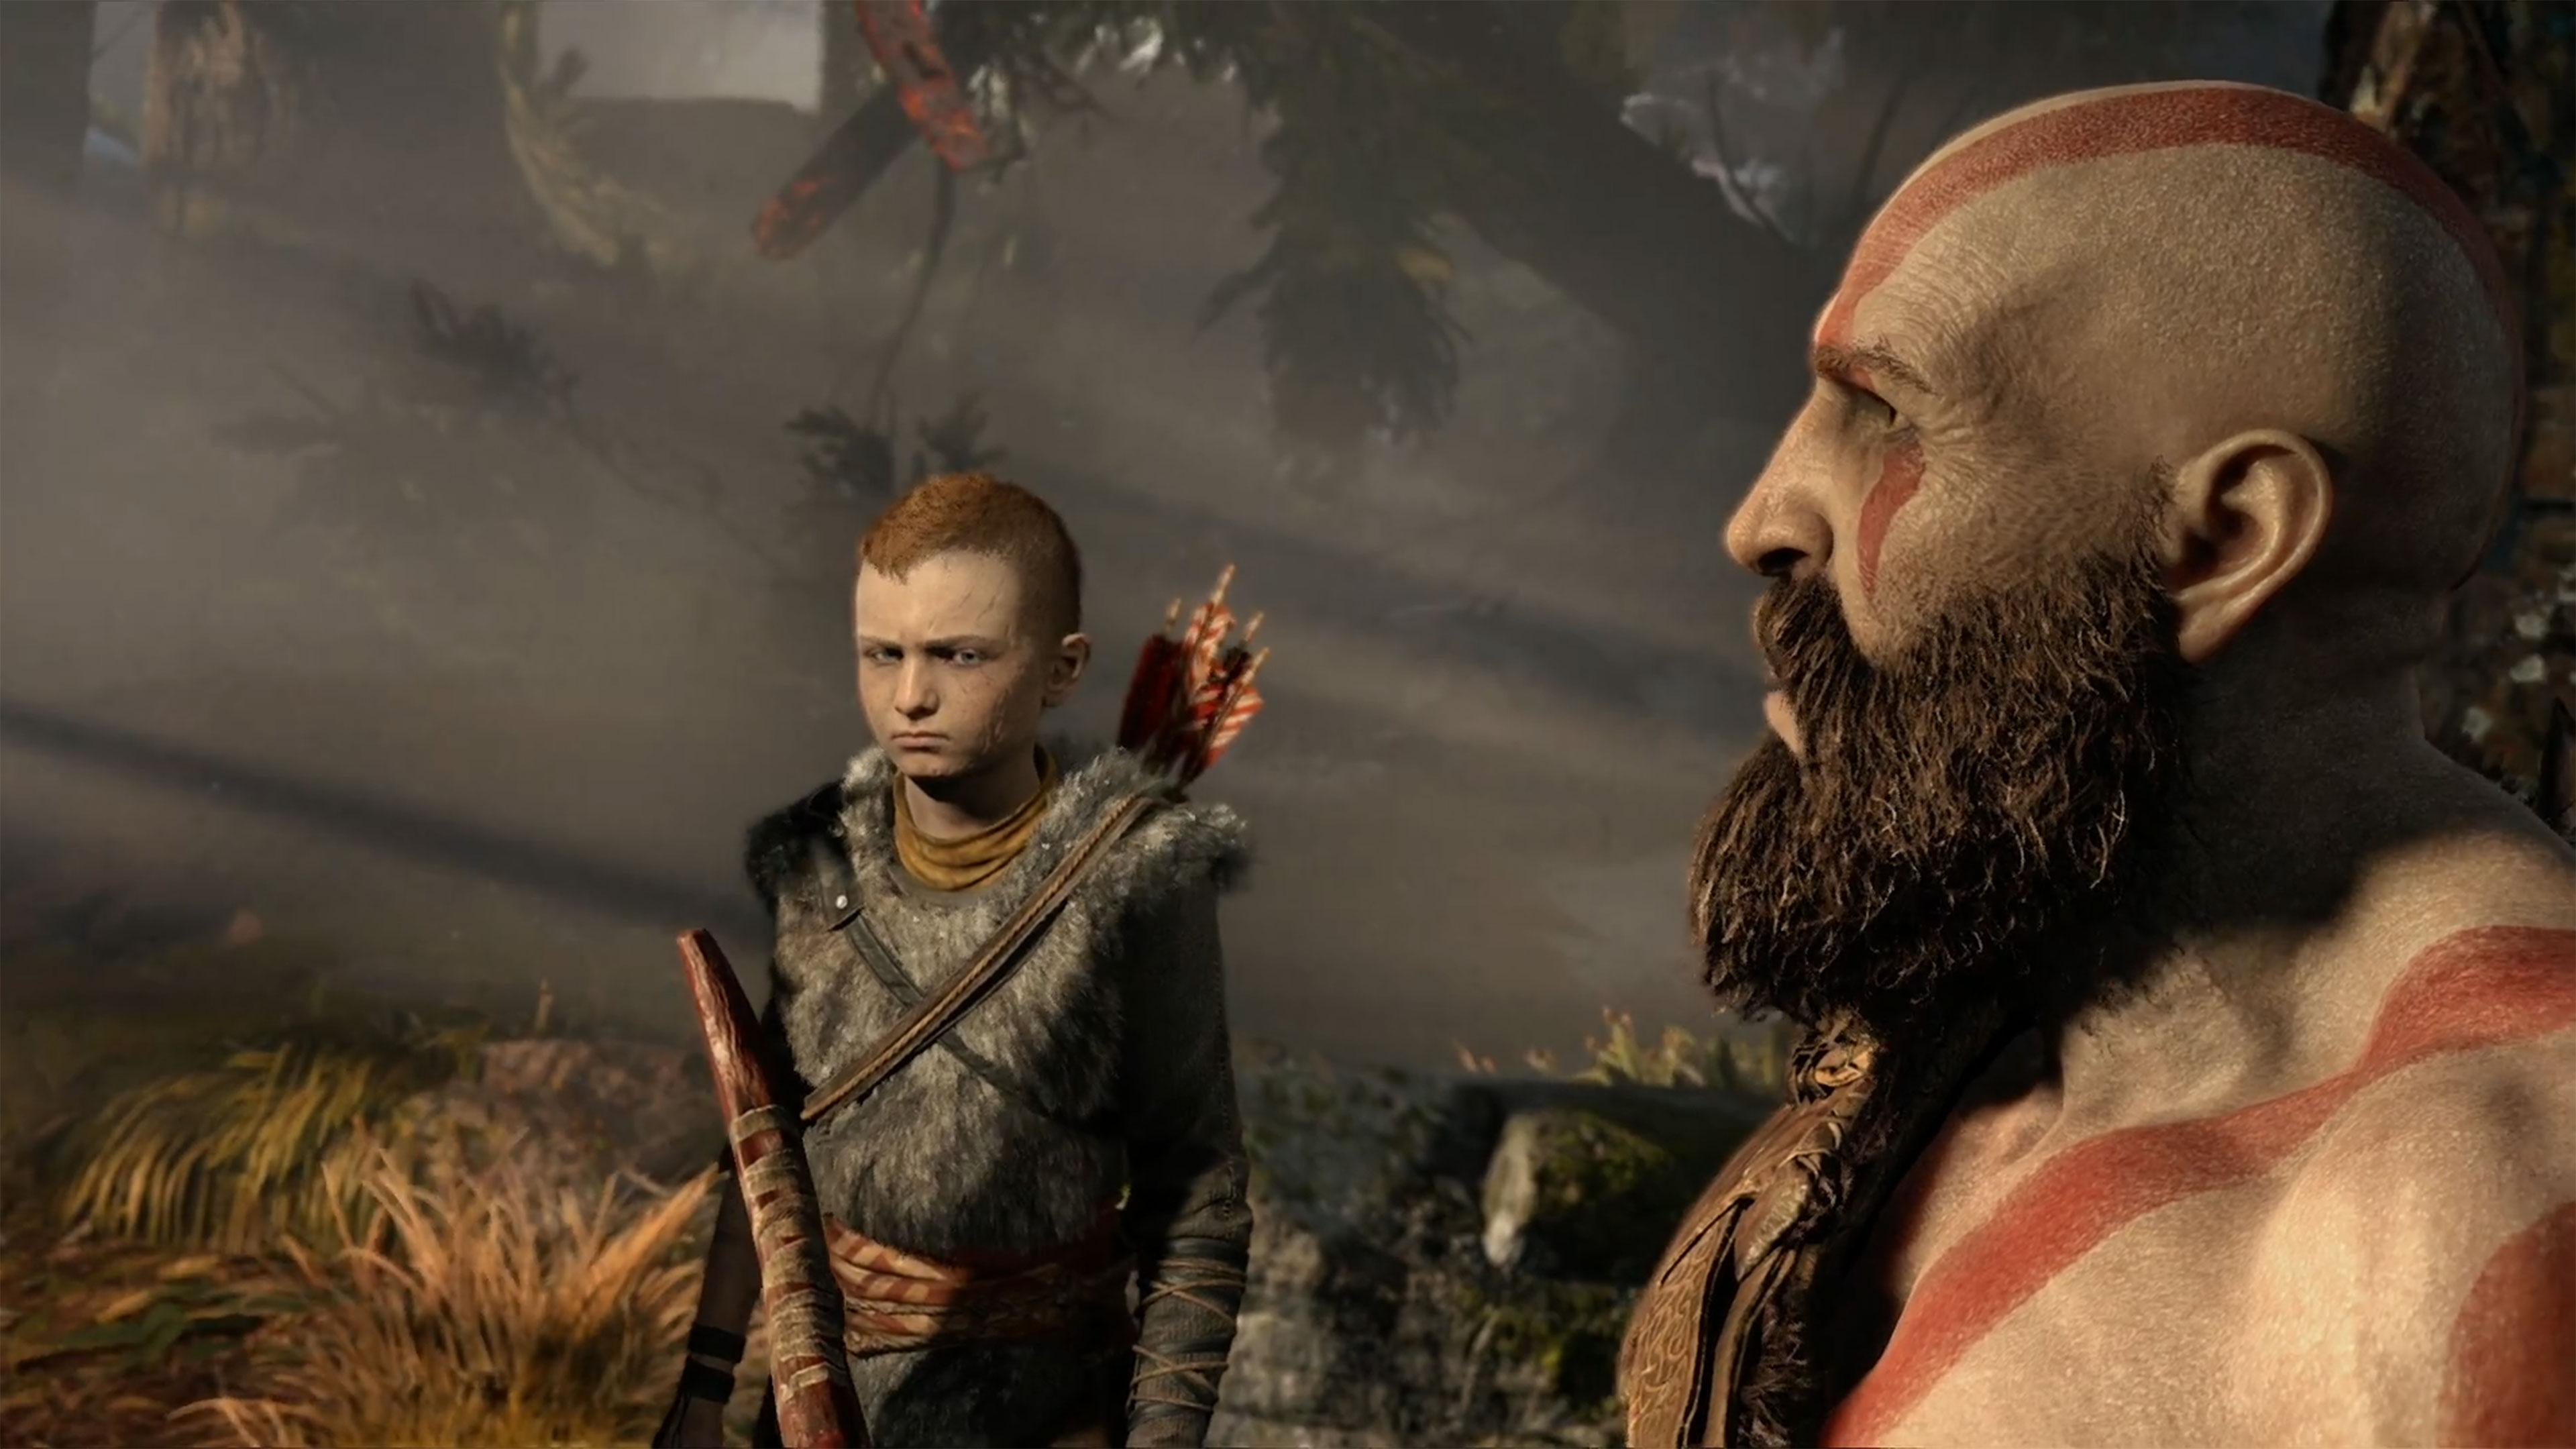 god of war (2018) 4k ultra hd wallpaper and background image